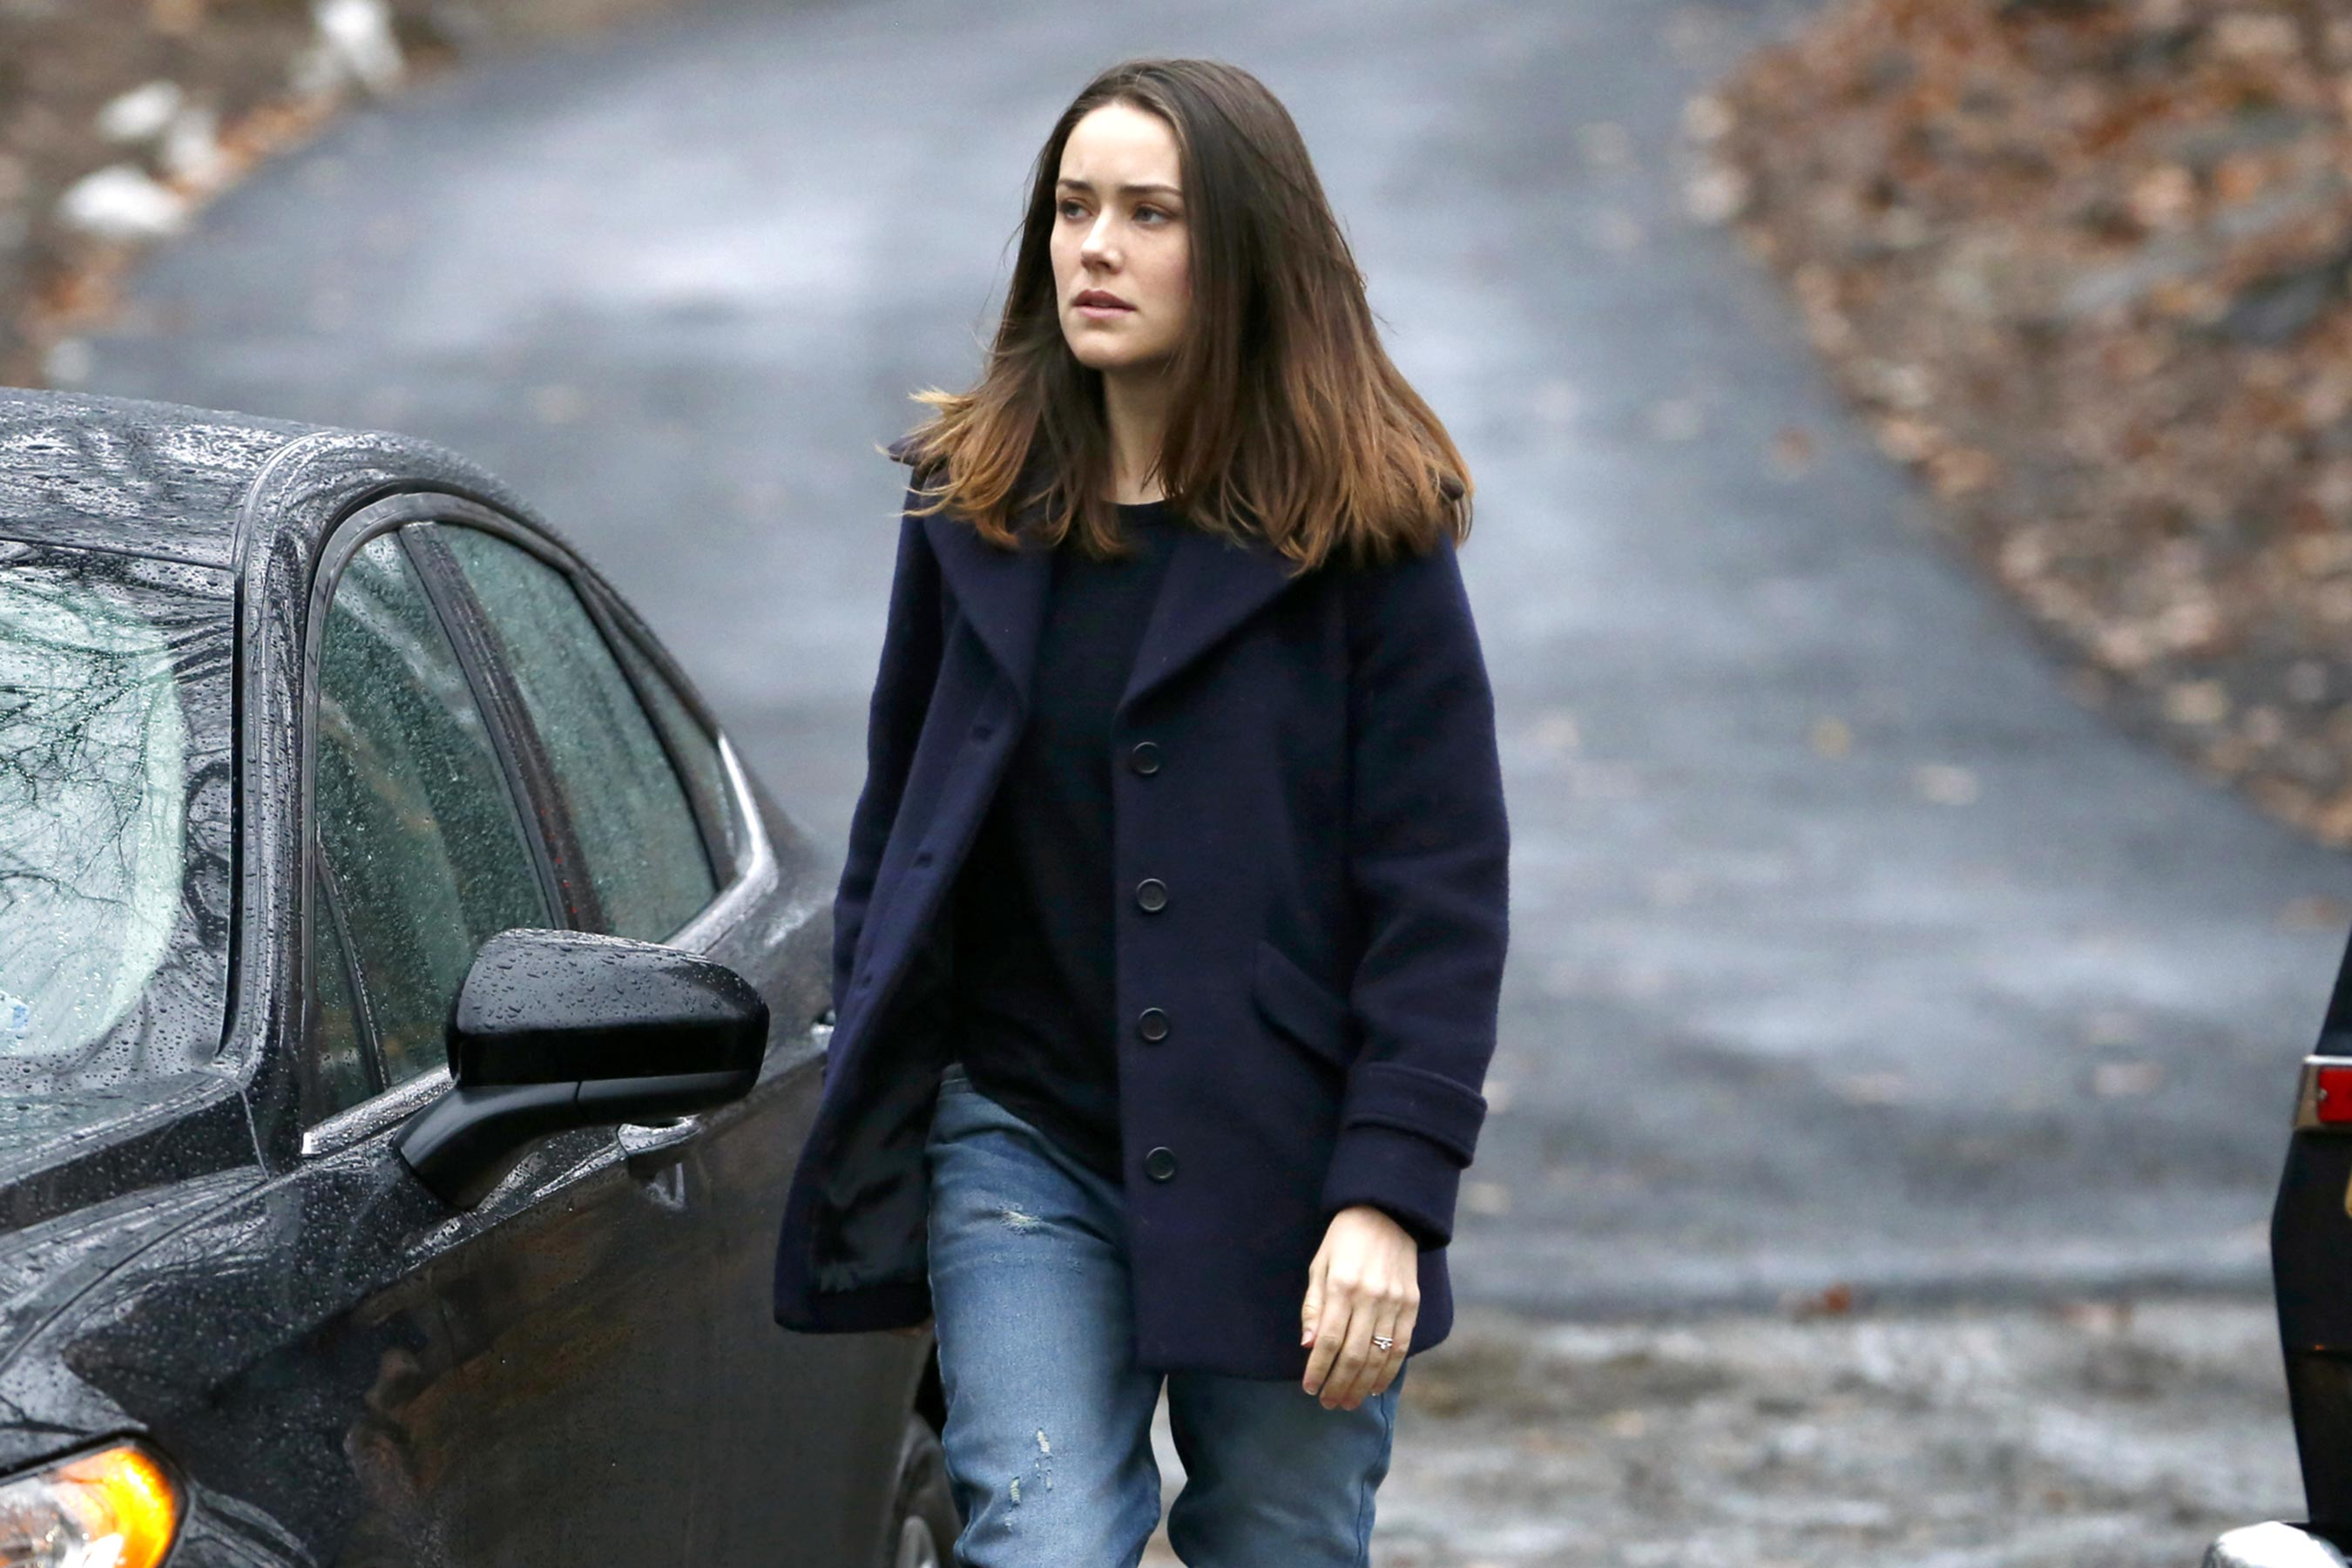 The Blacklist: Megan Boone's character won't carry assault rifles again